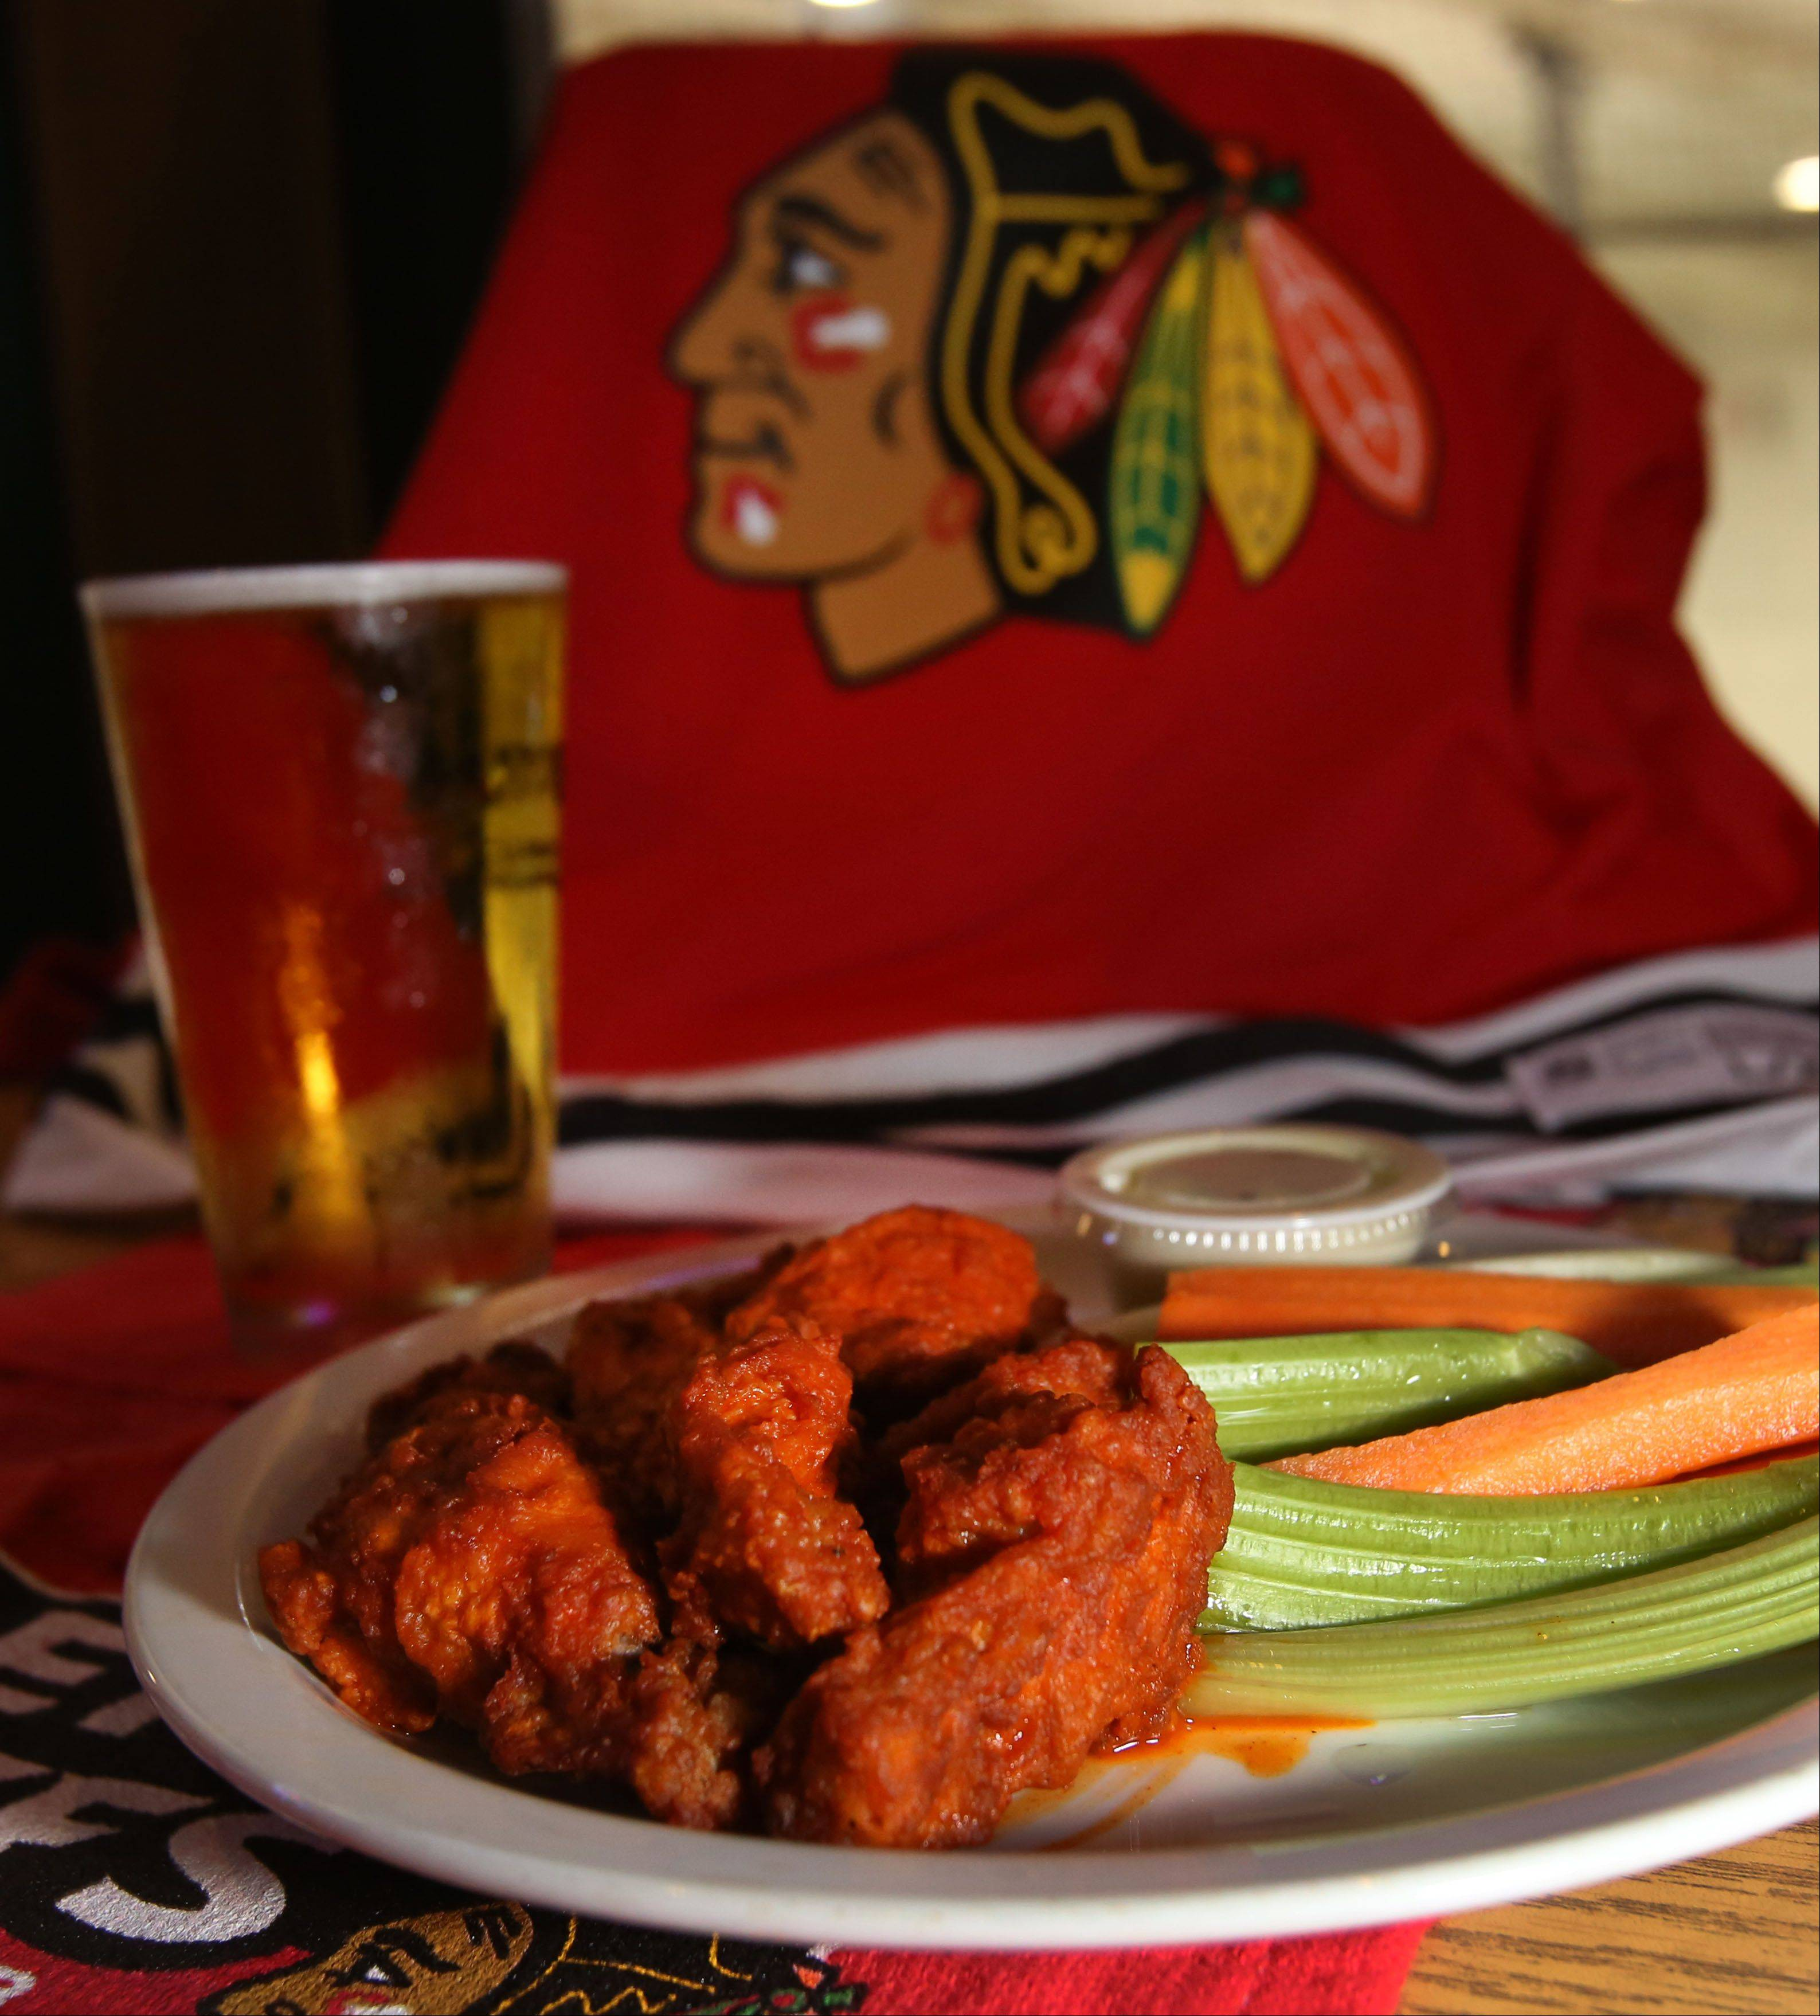 Wings and beer make a great combo for the Blackhawks games at the Blue Line Bar & Grill in Addison.